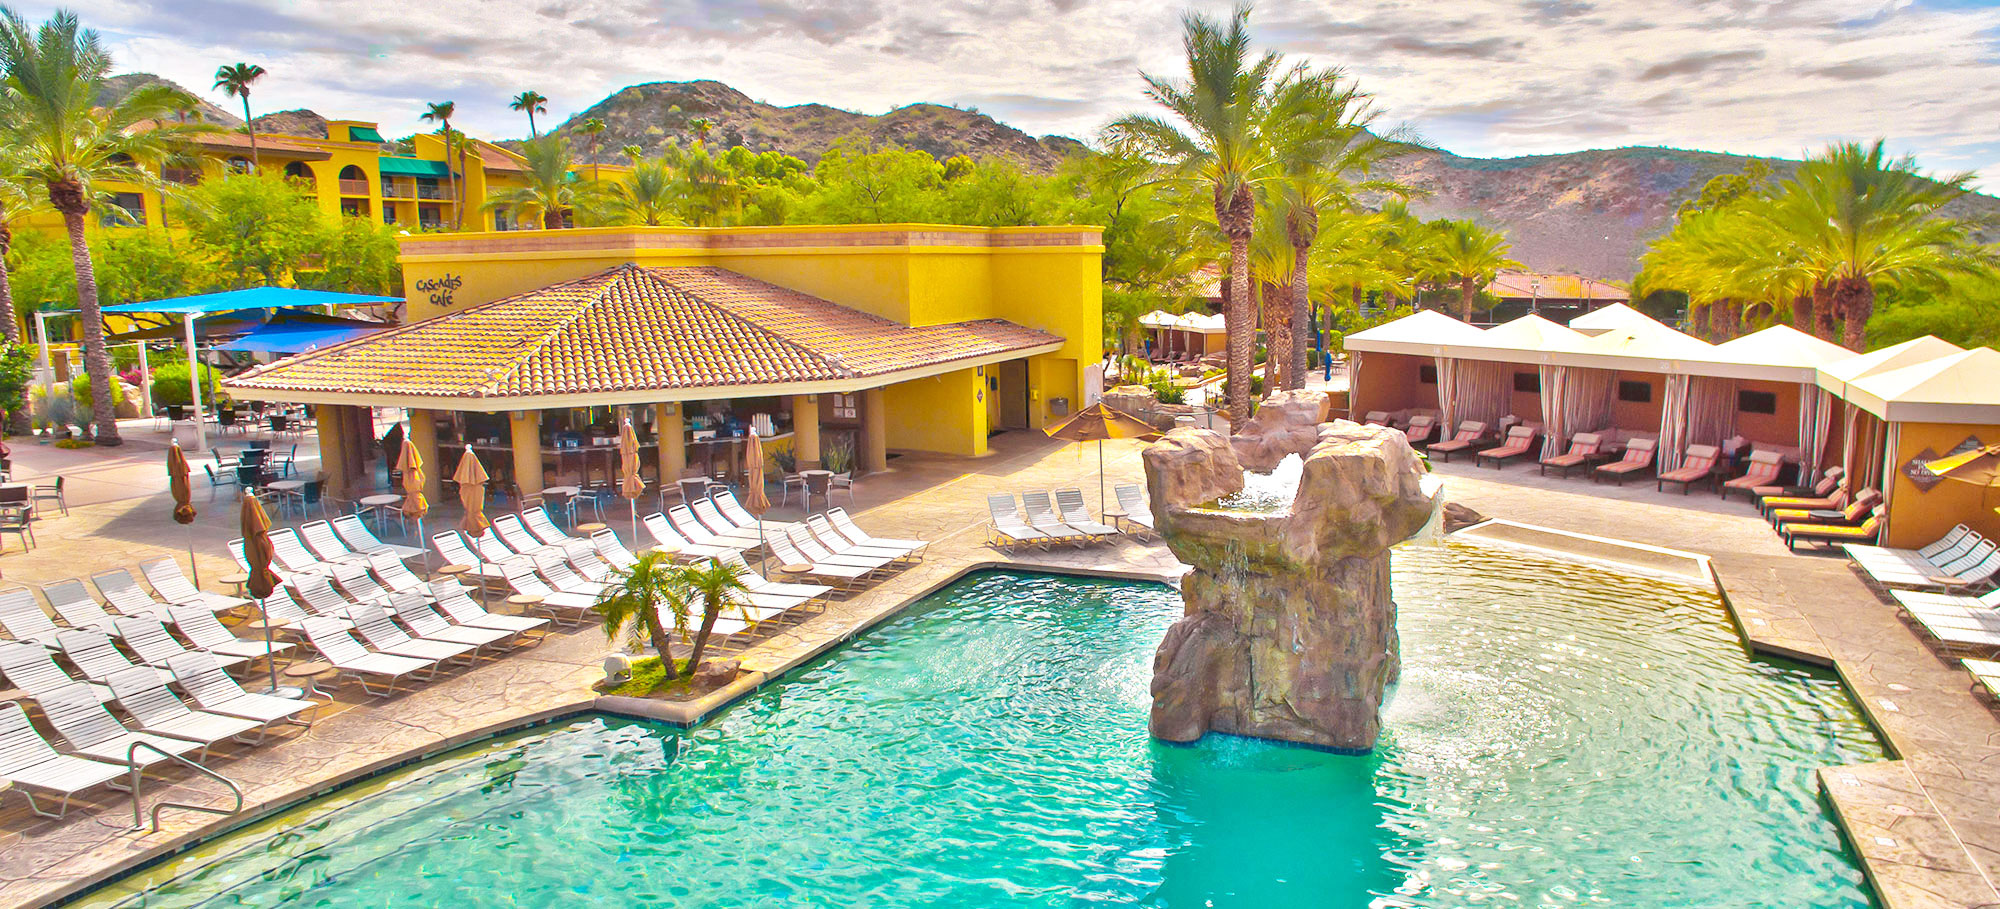 Photo of The Falls Water Village featuring the bar, lounge chairs, sparkling pool, cabanas, palm trees and surrounding mountains